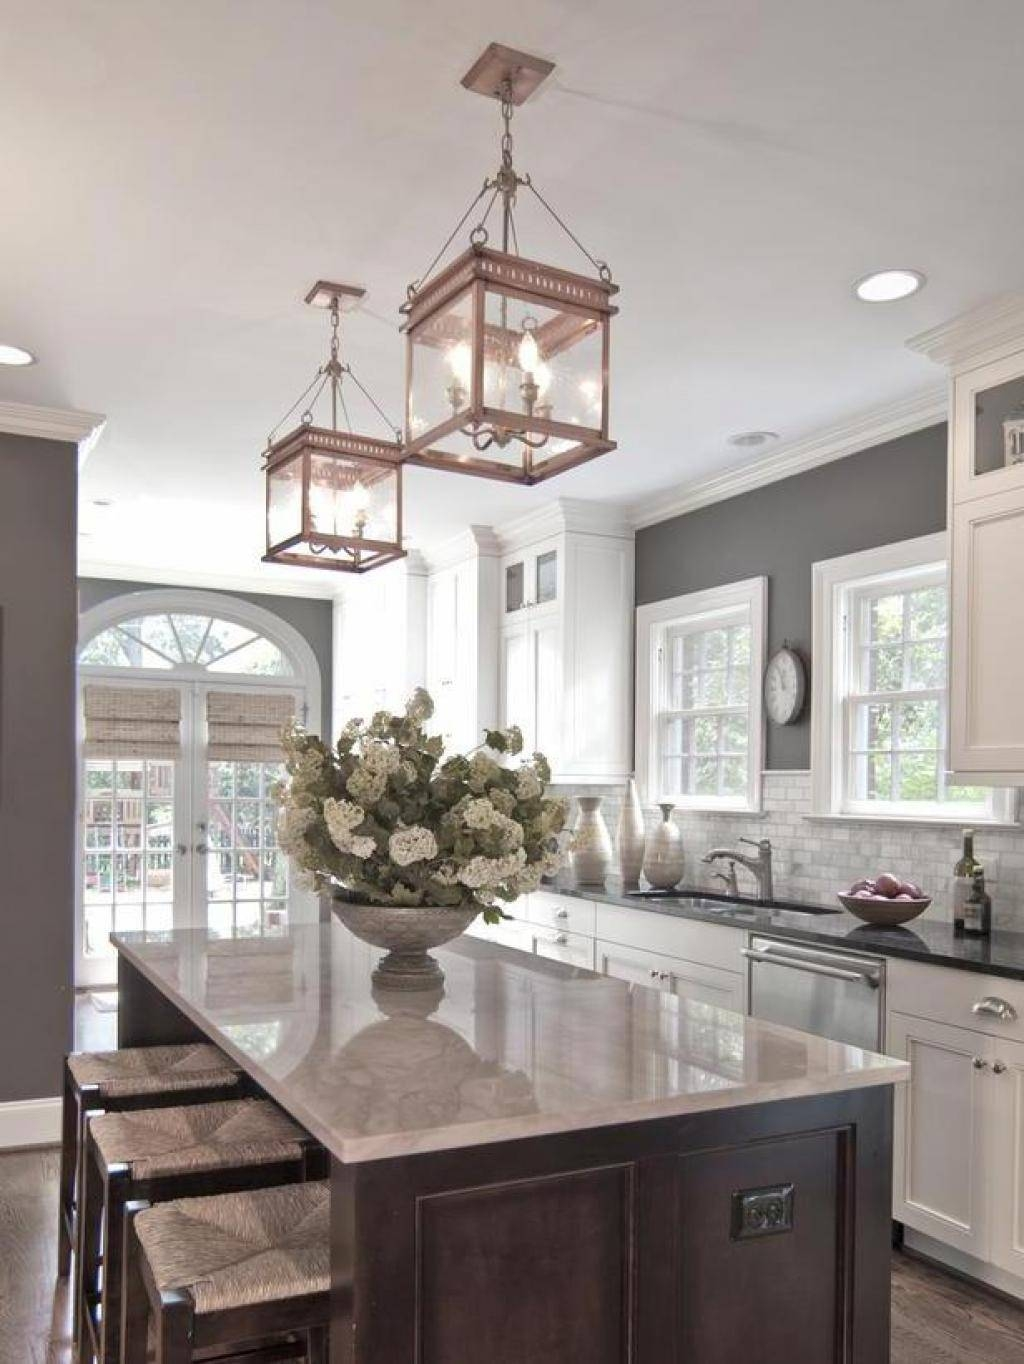 Lantern Style Pendant Lighting – Baby Exit With Regard To Clearance Pendant Lighting (View 8 of 15)